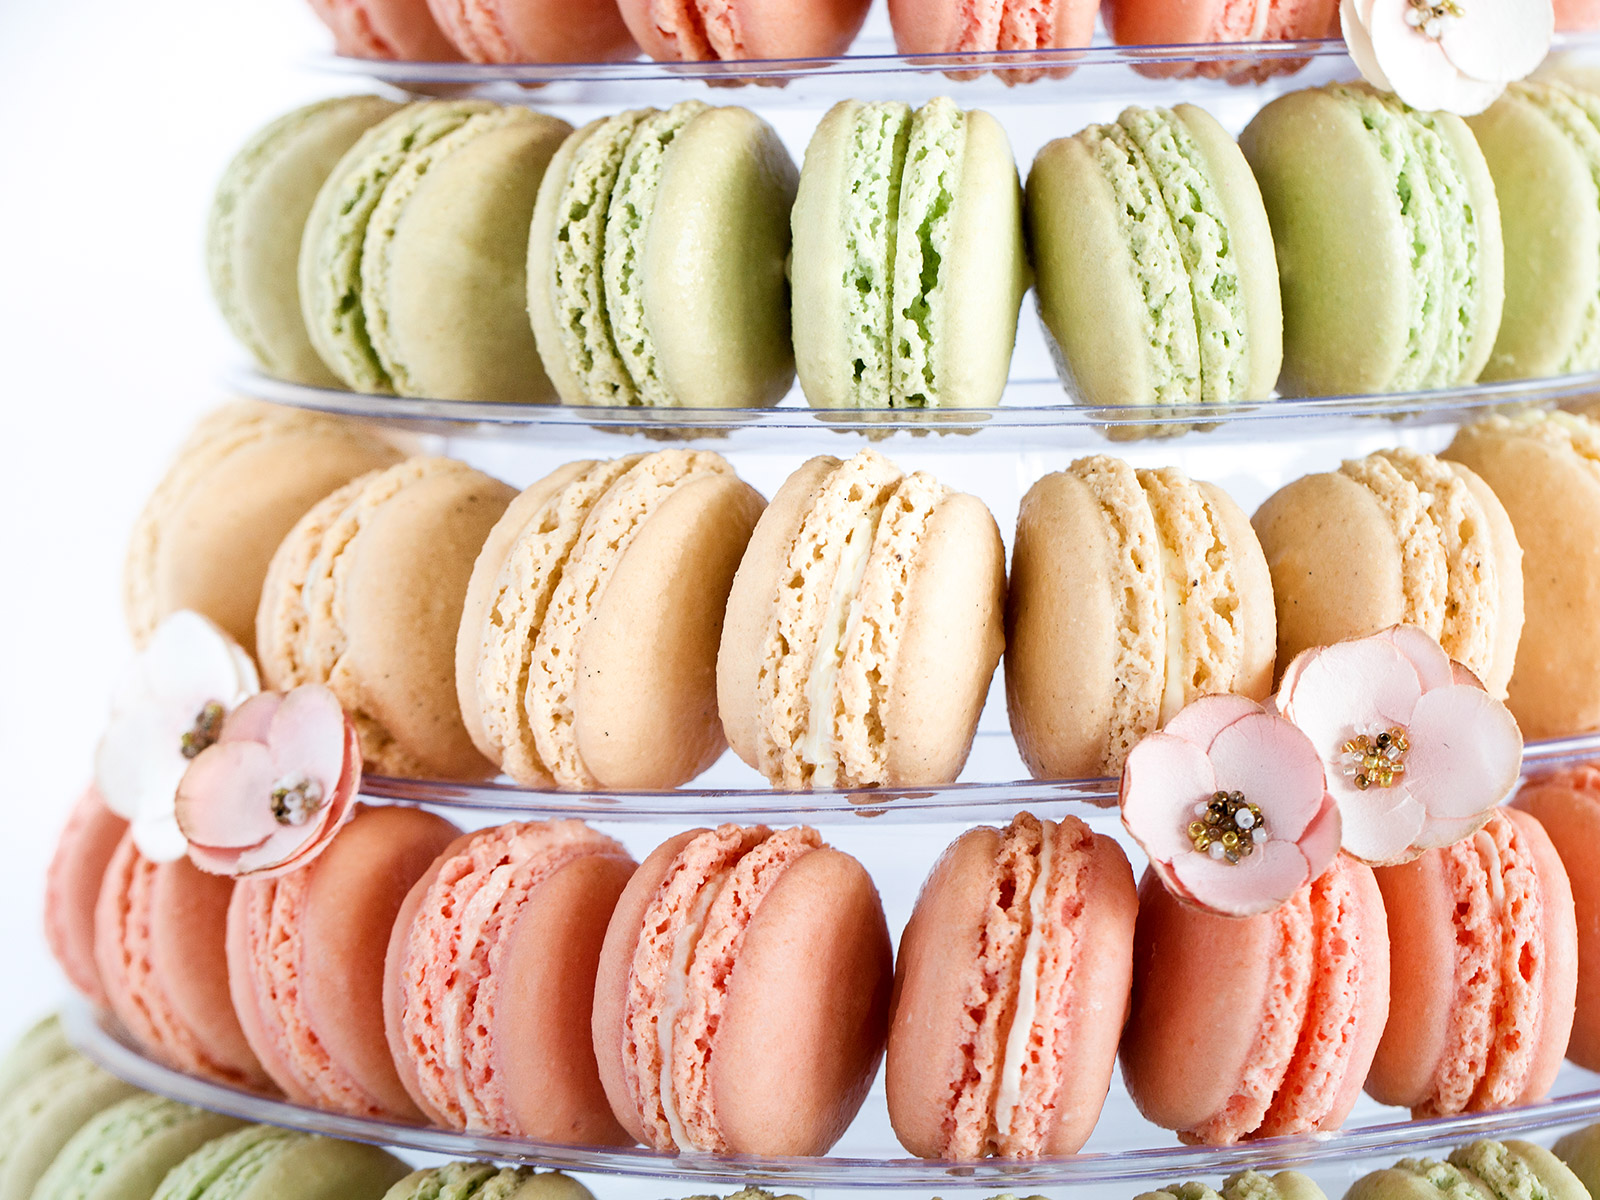 le macaron french pastries chain in america